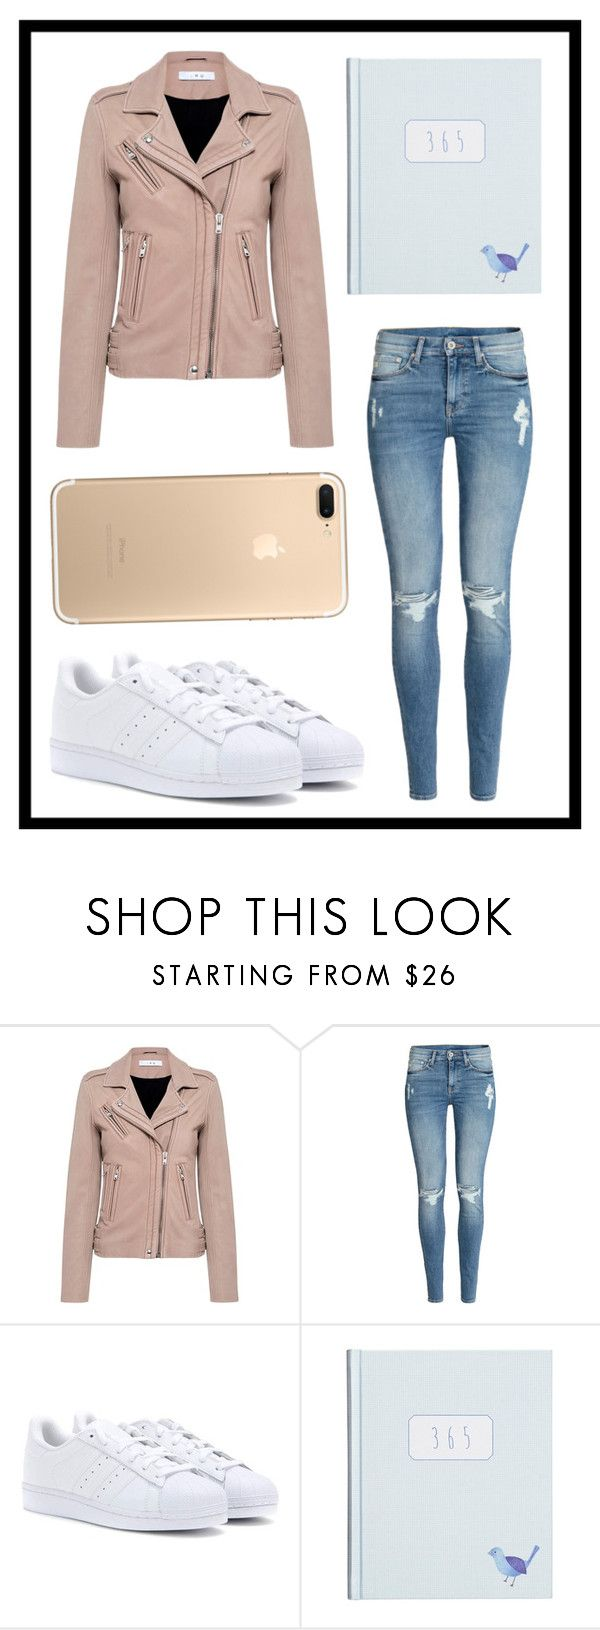 """""""#644"""" by xjet1998x ❤ liked on Polyvore featuring IRO, H&M and adidas"""